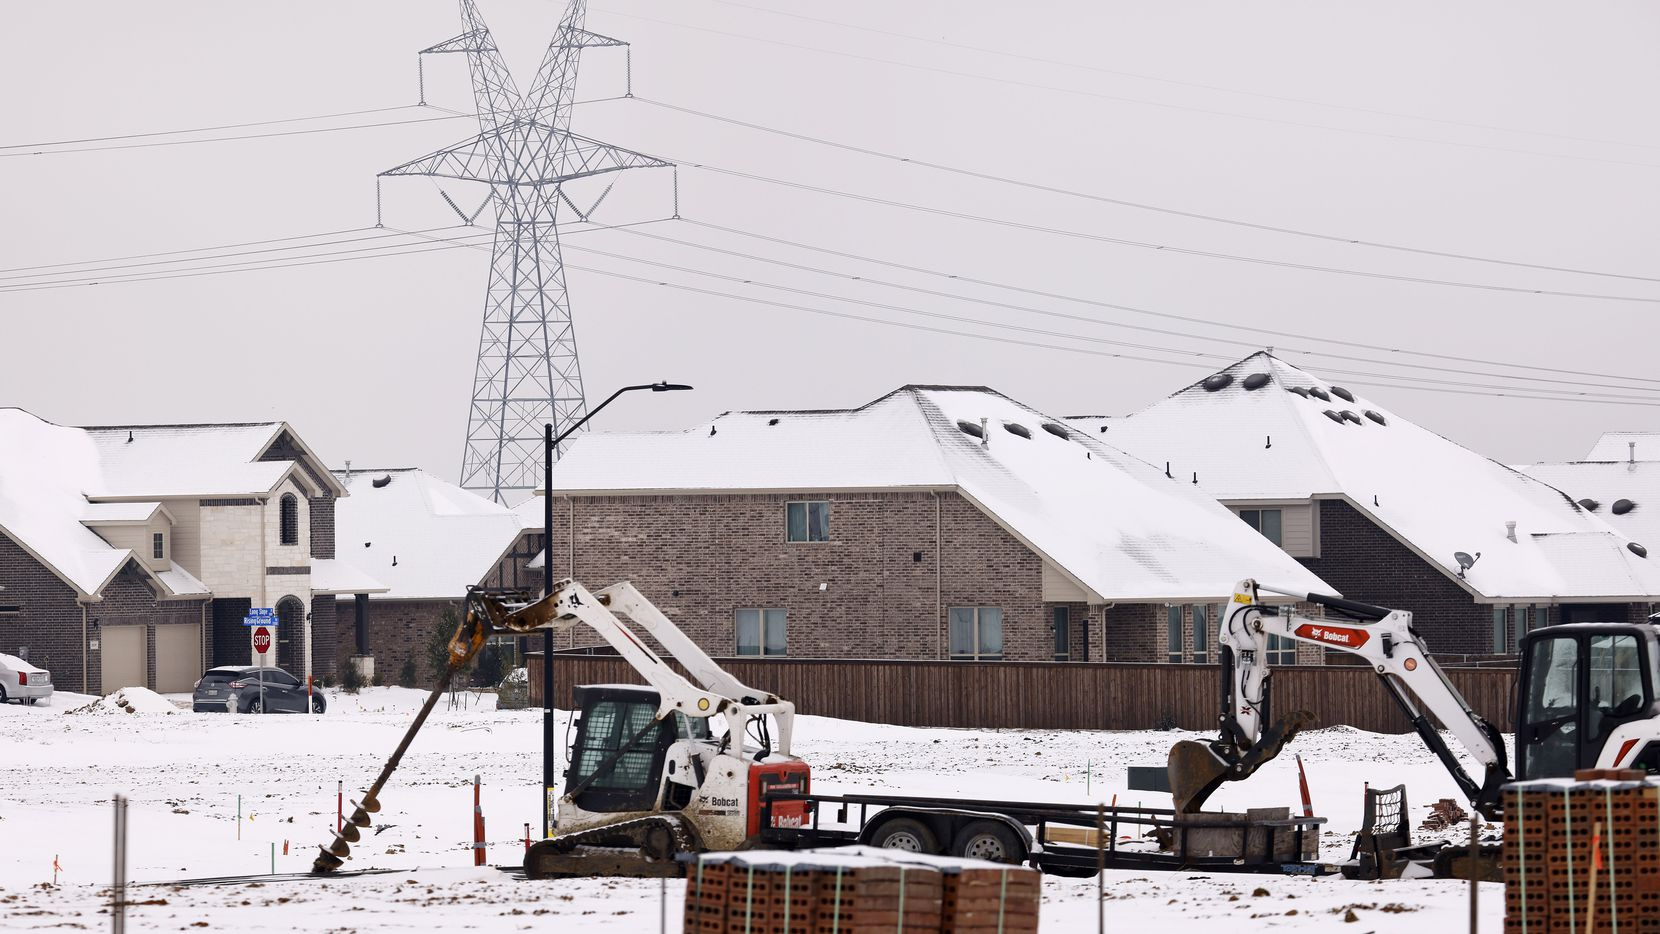 Large electrical transmission lines are pictured in a new housing development in South Arlington, Wednesday, February 17, 2021. Rolling power outages have disrupted service to customers following this weeks snow storm and deep freeze. (Tom Fox/The Dallas Morning News)